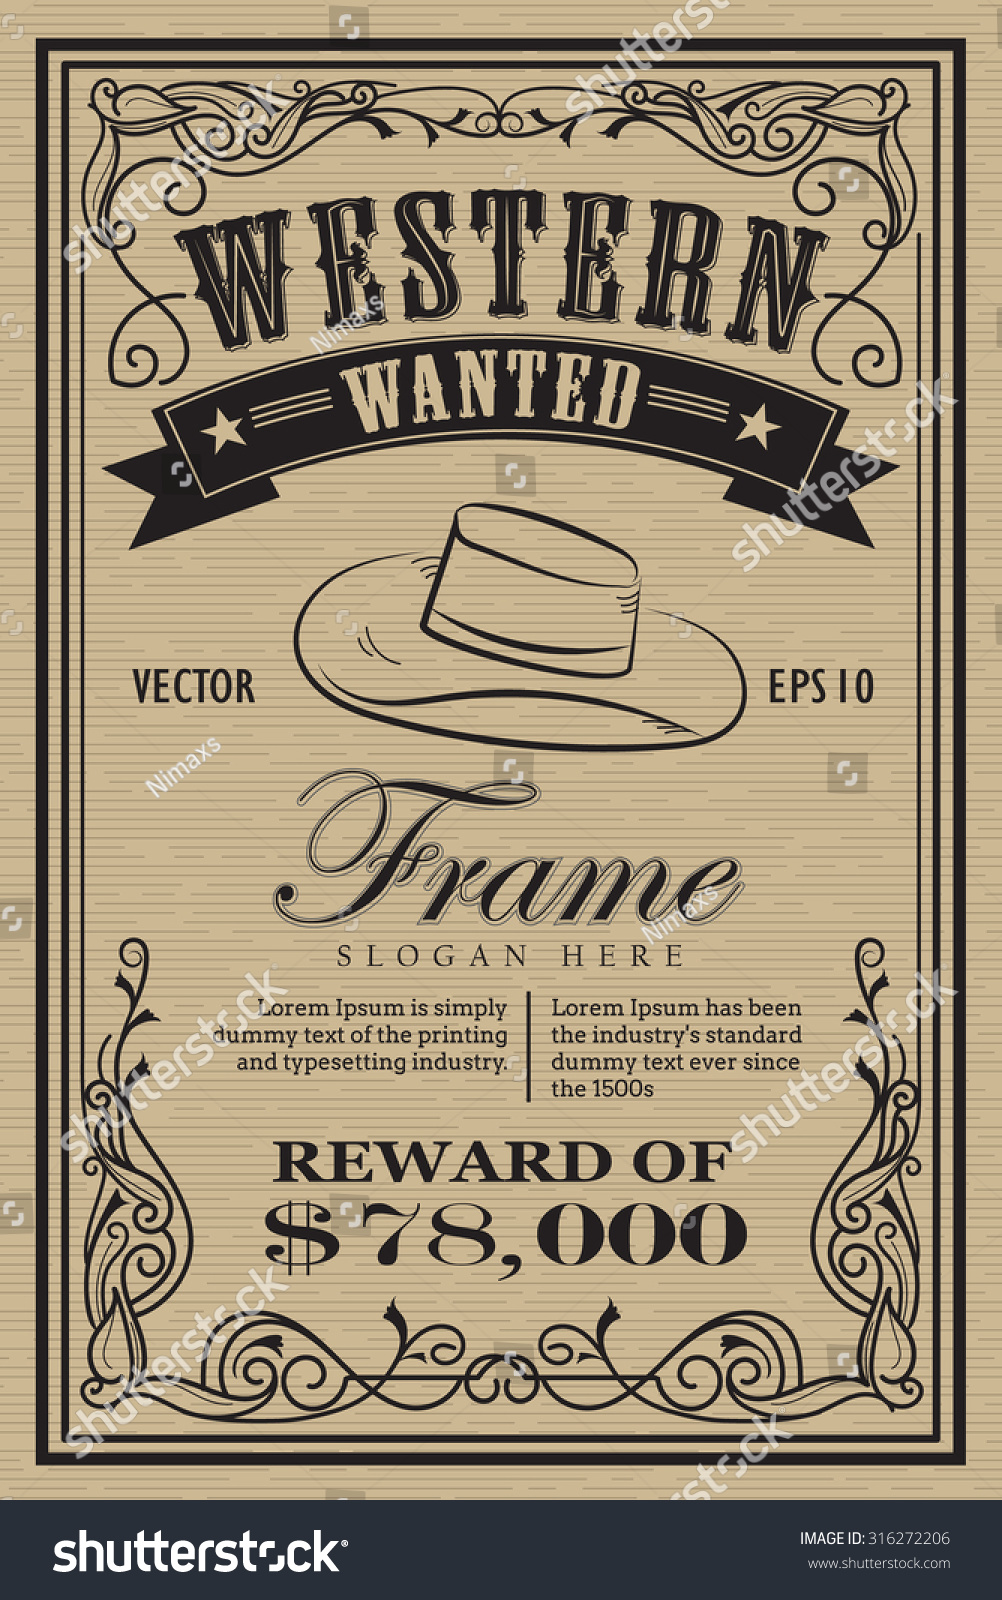 Royalty-free Western vintage frame label wanted… #316272206 Stock ...